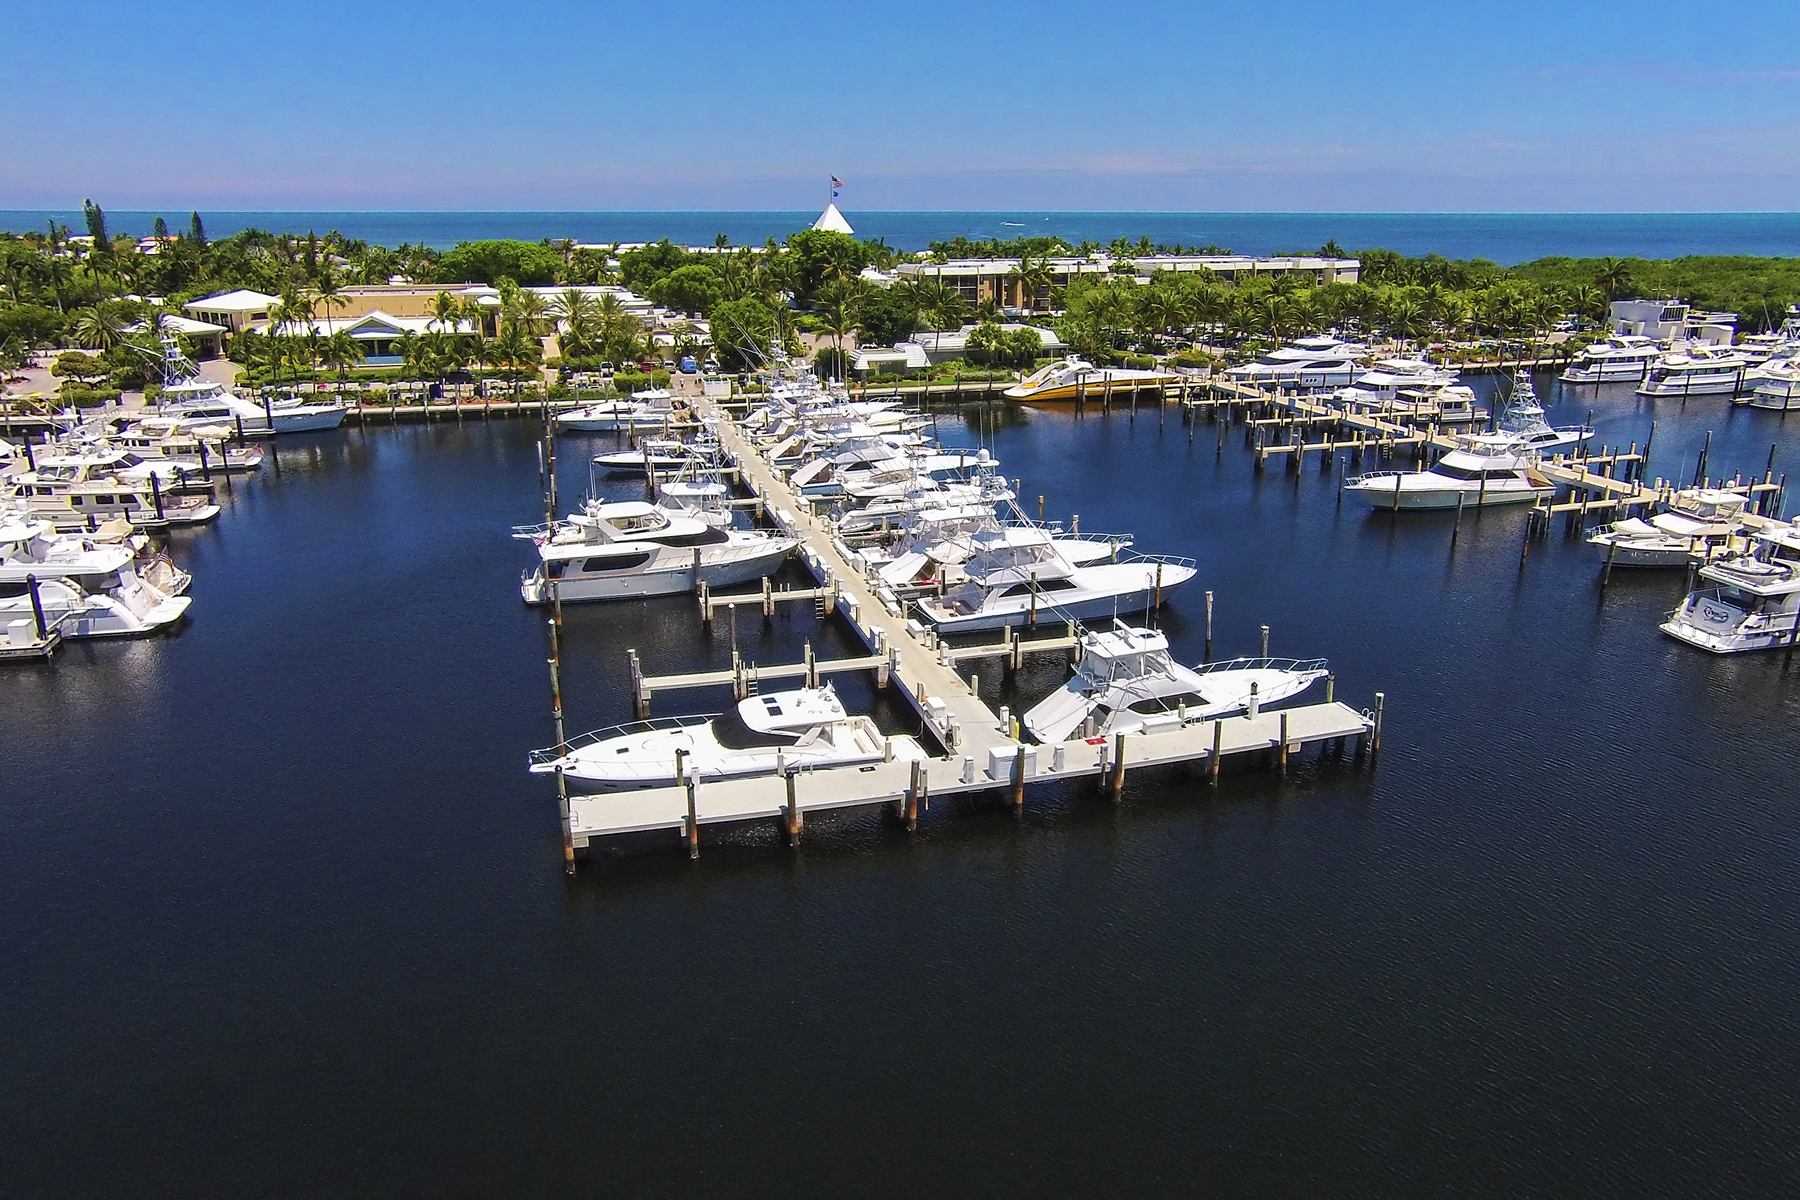 Additional photo for property listing at Ocean Reef Marina Offers Full Yacht Services 201 Ocean Reef Drive, Dock FS-25 Key Largo, 佛羅里達州 33037 美國